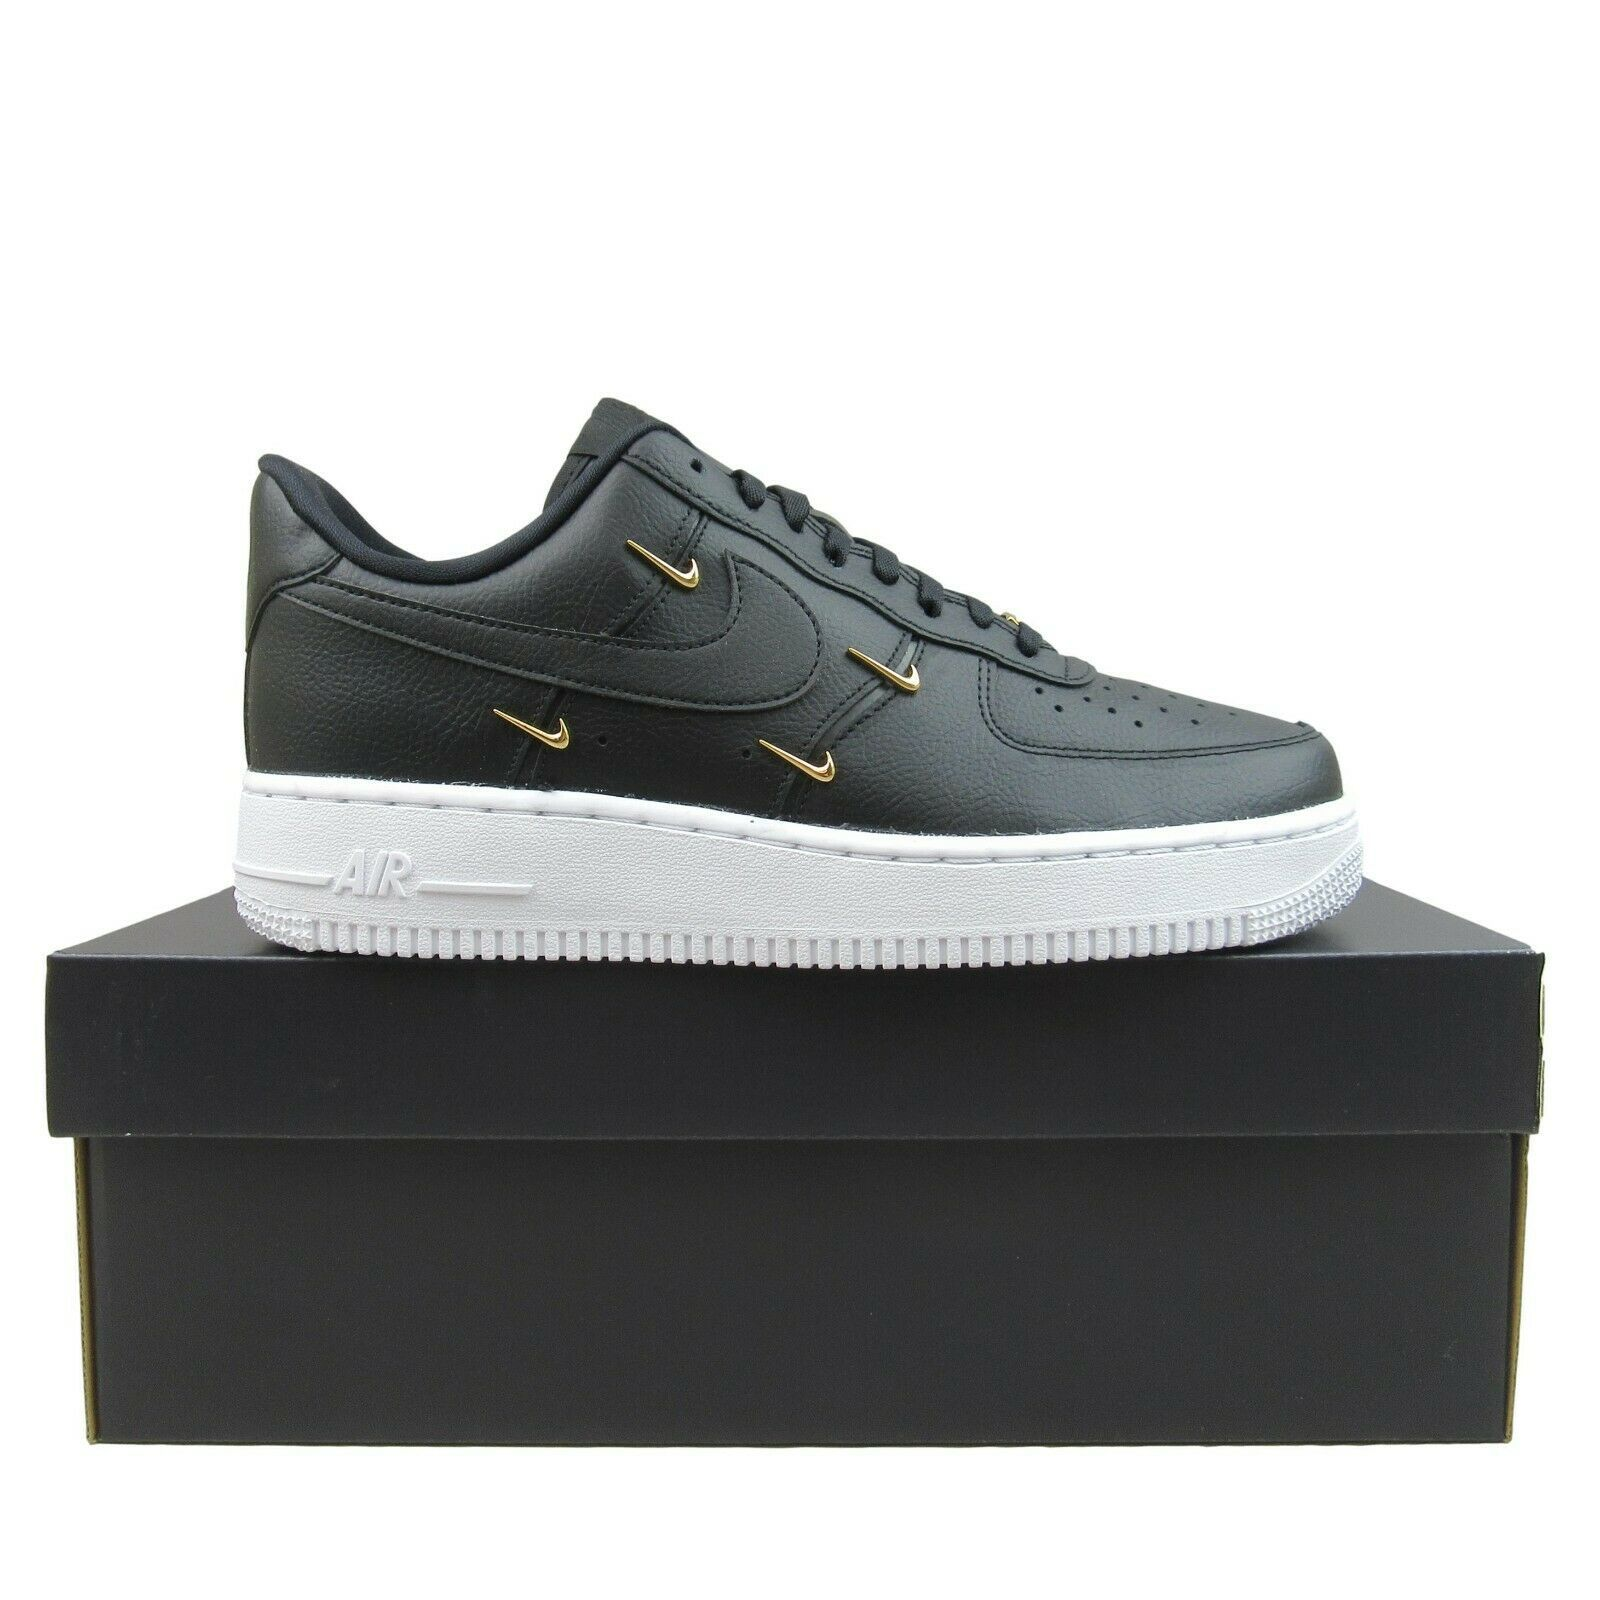 Primary image for Nike Air Force 1 '07 LX Womens Sisterhood Size 9 Black Gold NEW CT1990-001